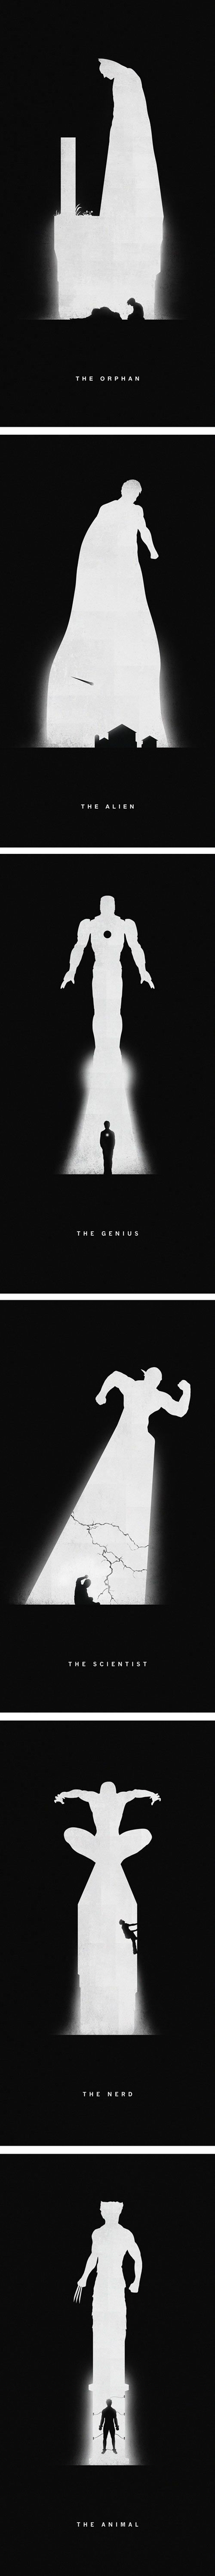 Superhero Posters. It uses positive and negative space, as well as a couple words to explain how the super hero came to be. I like how creative and simple the designs are, and how the history and stereotype of the super hero are clear without too much detail.